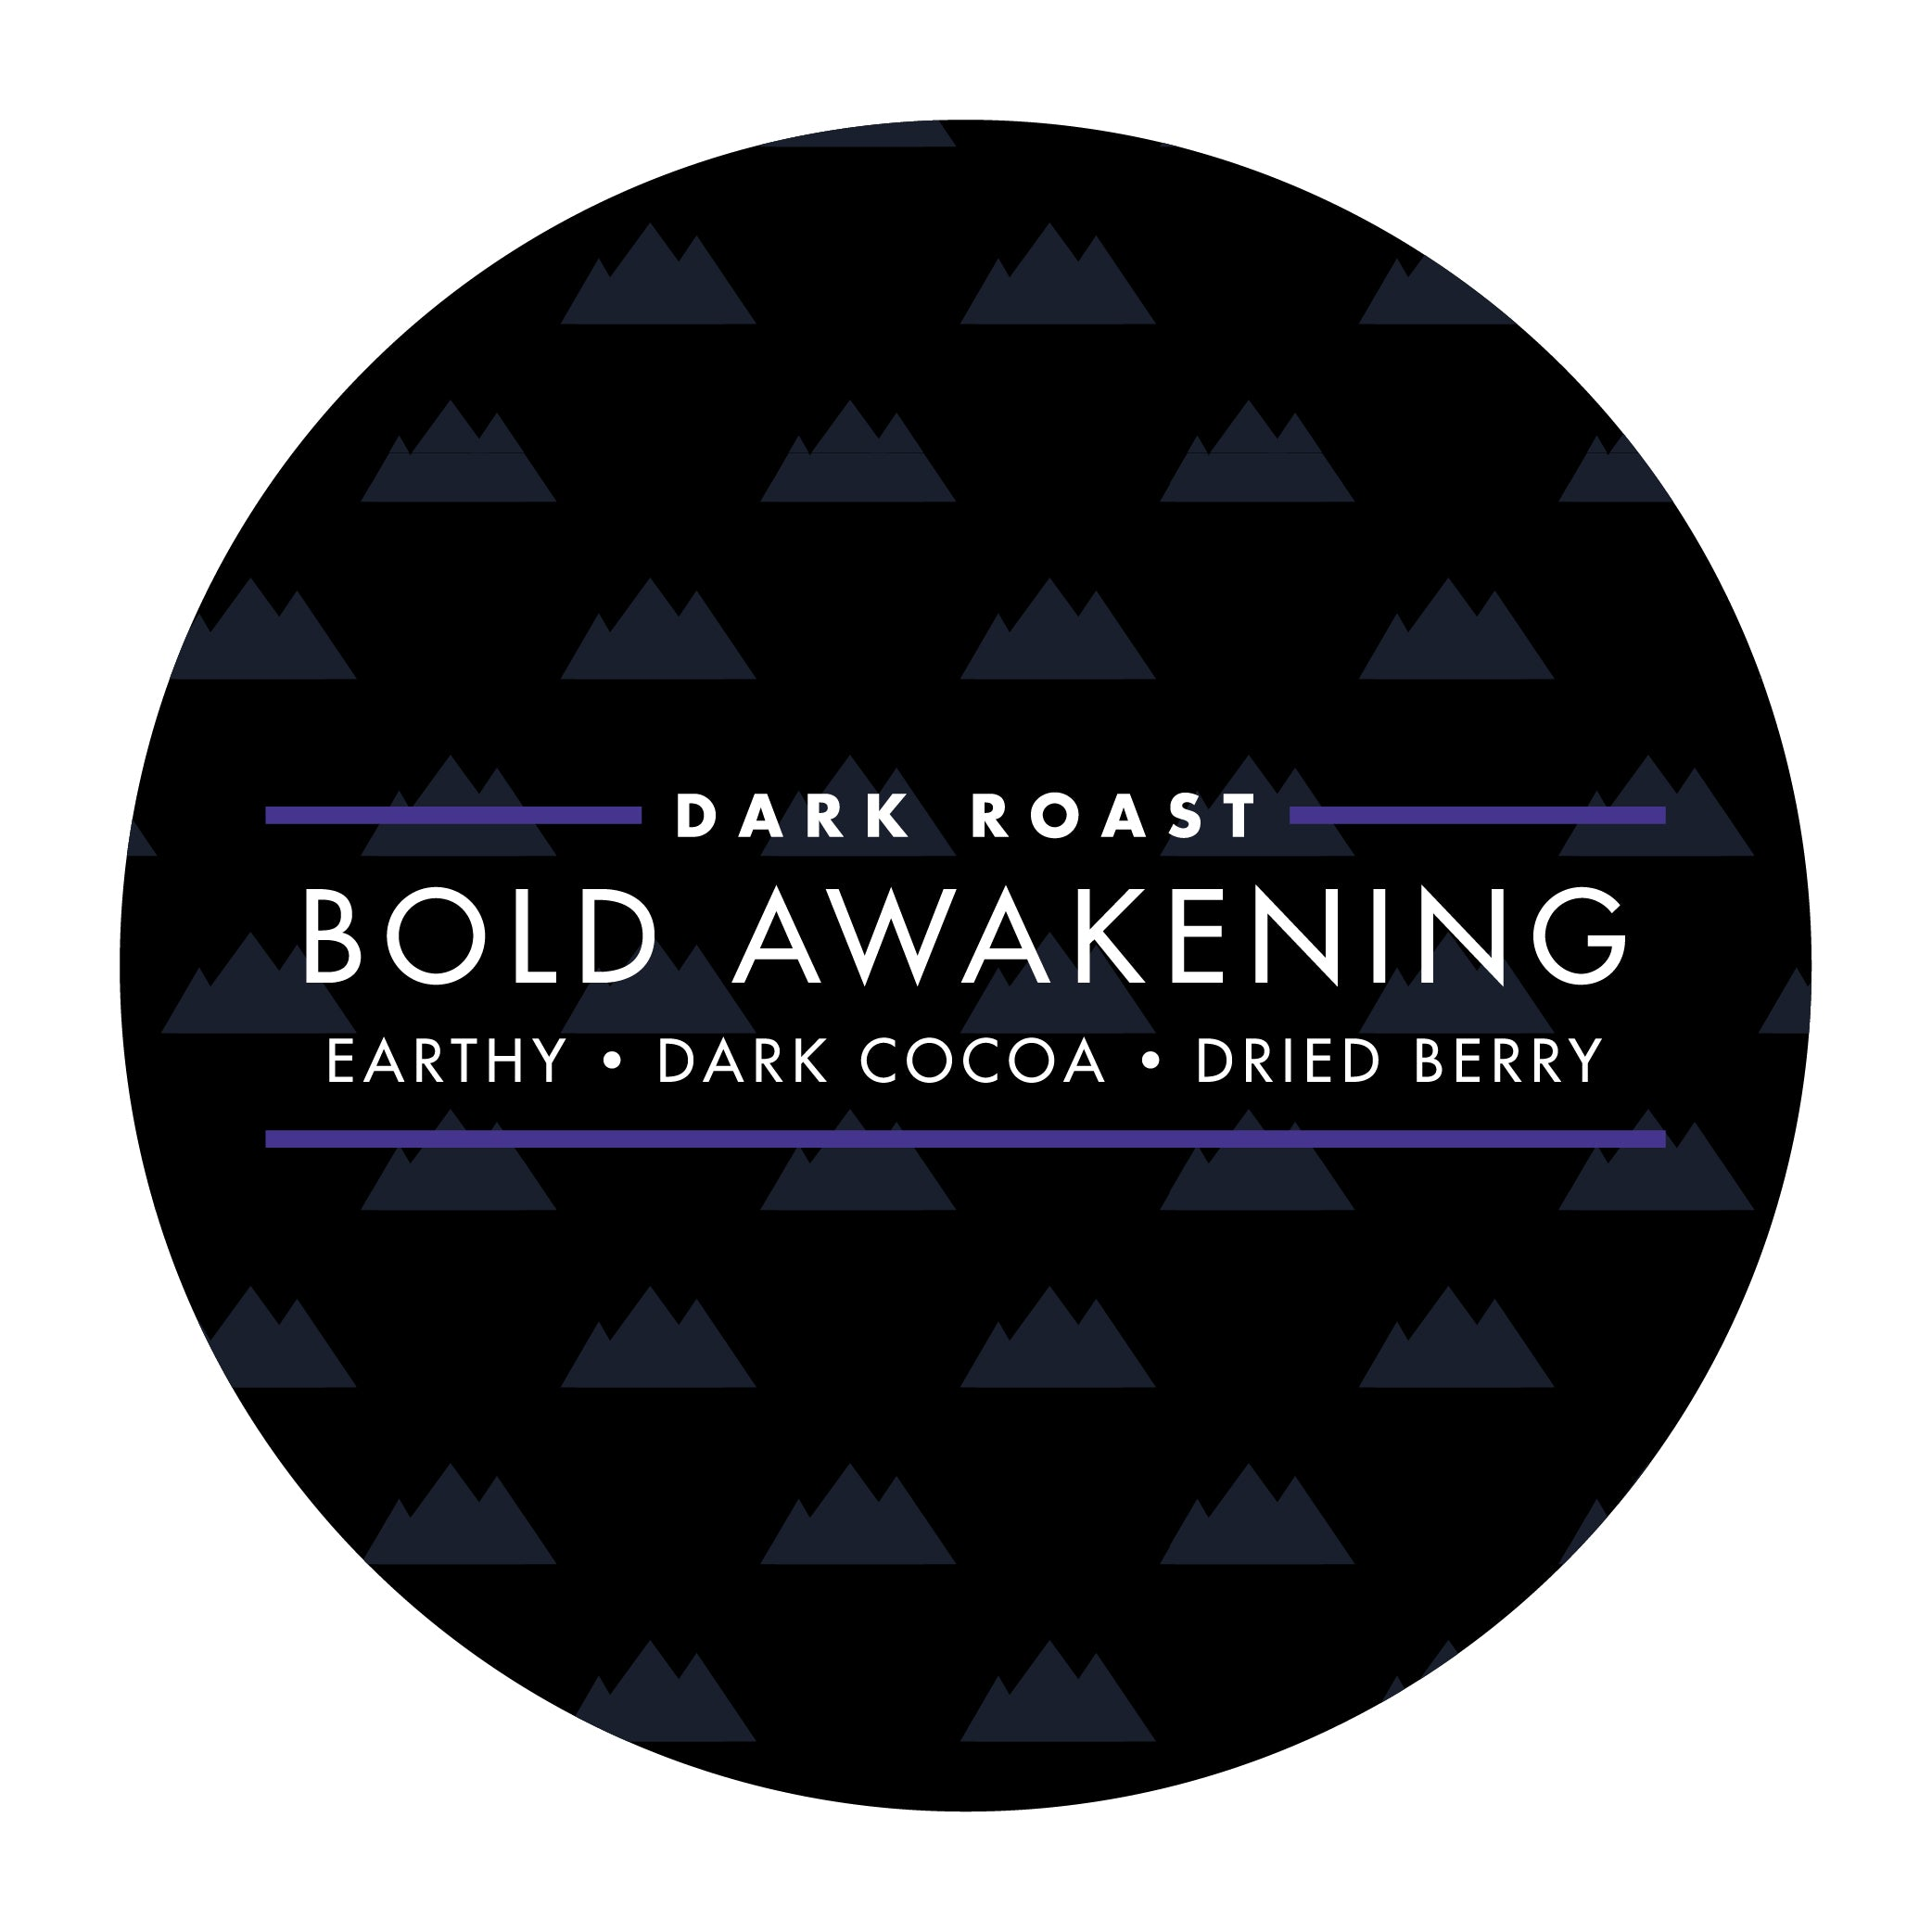 Bold Awakening Dark Roast Coffee